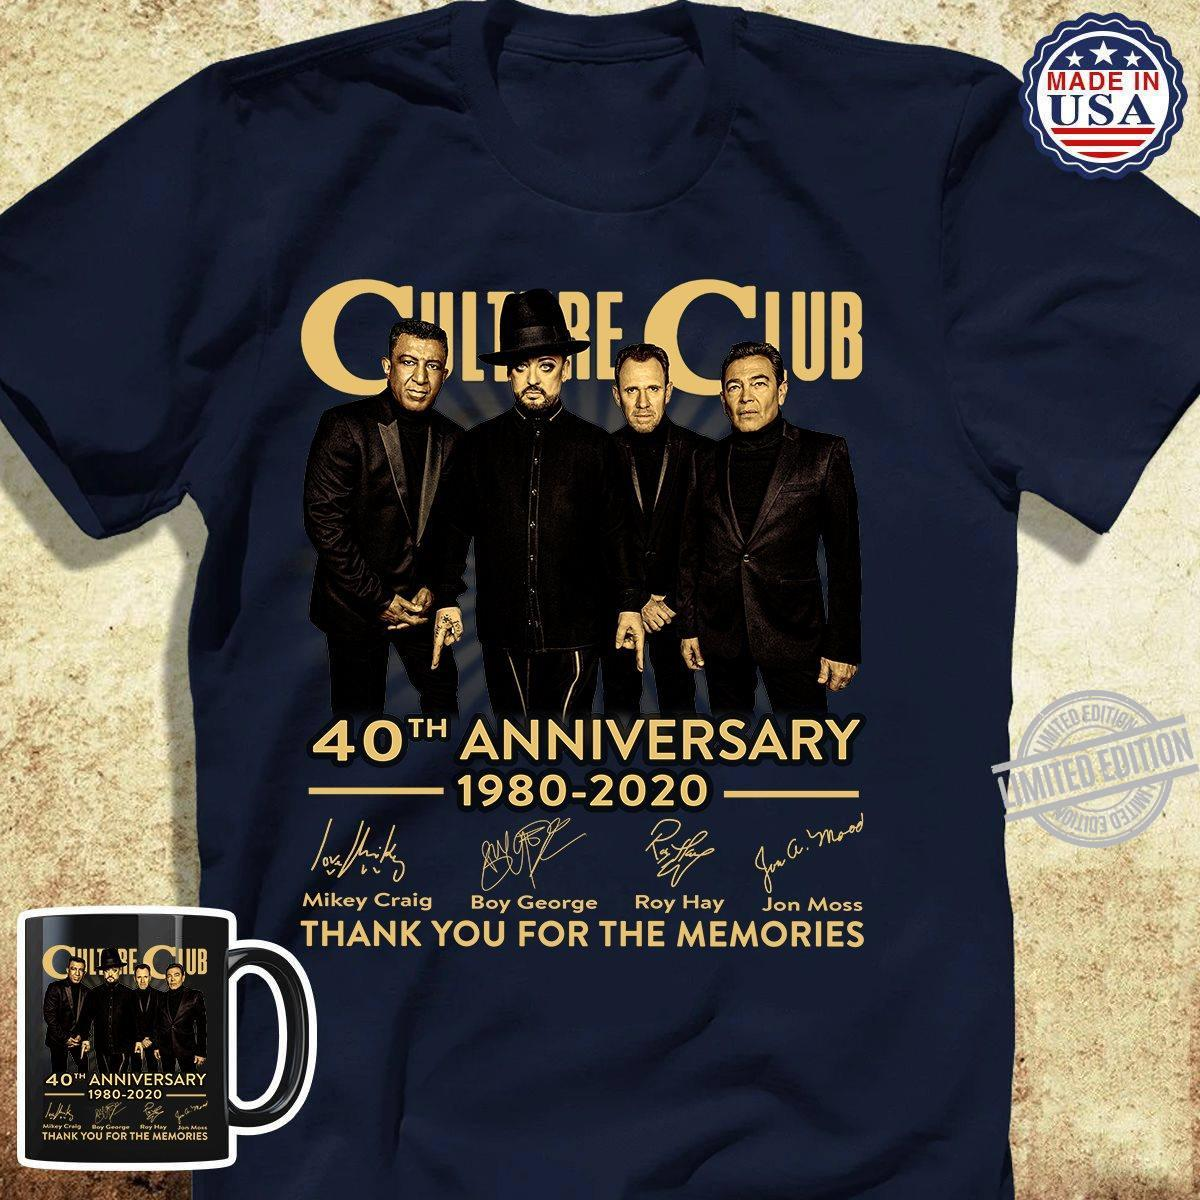 Culture Club 40th Anniversary 1980-2020 Thank You For The Memories Shirt